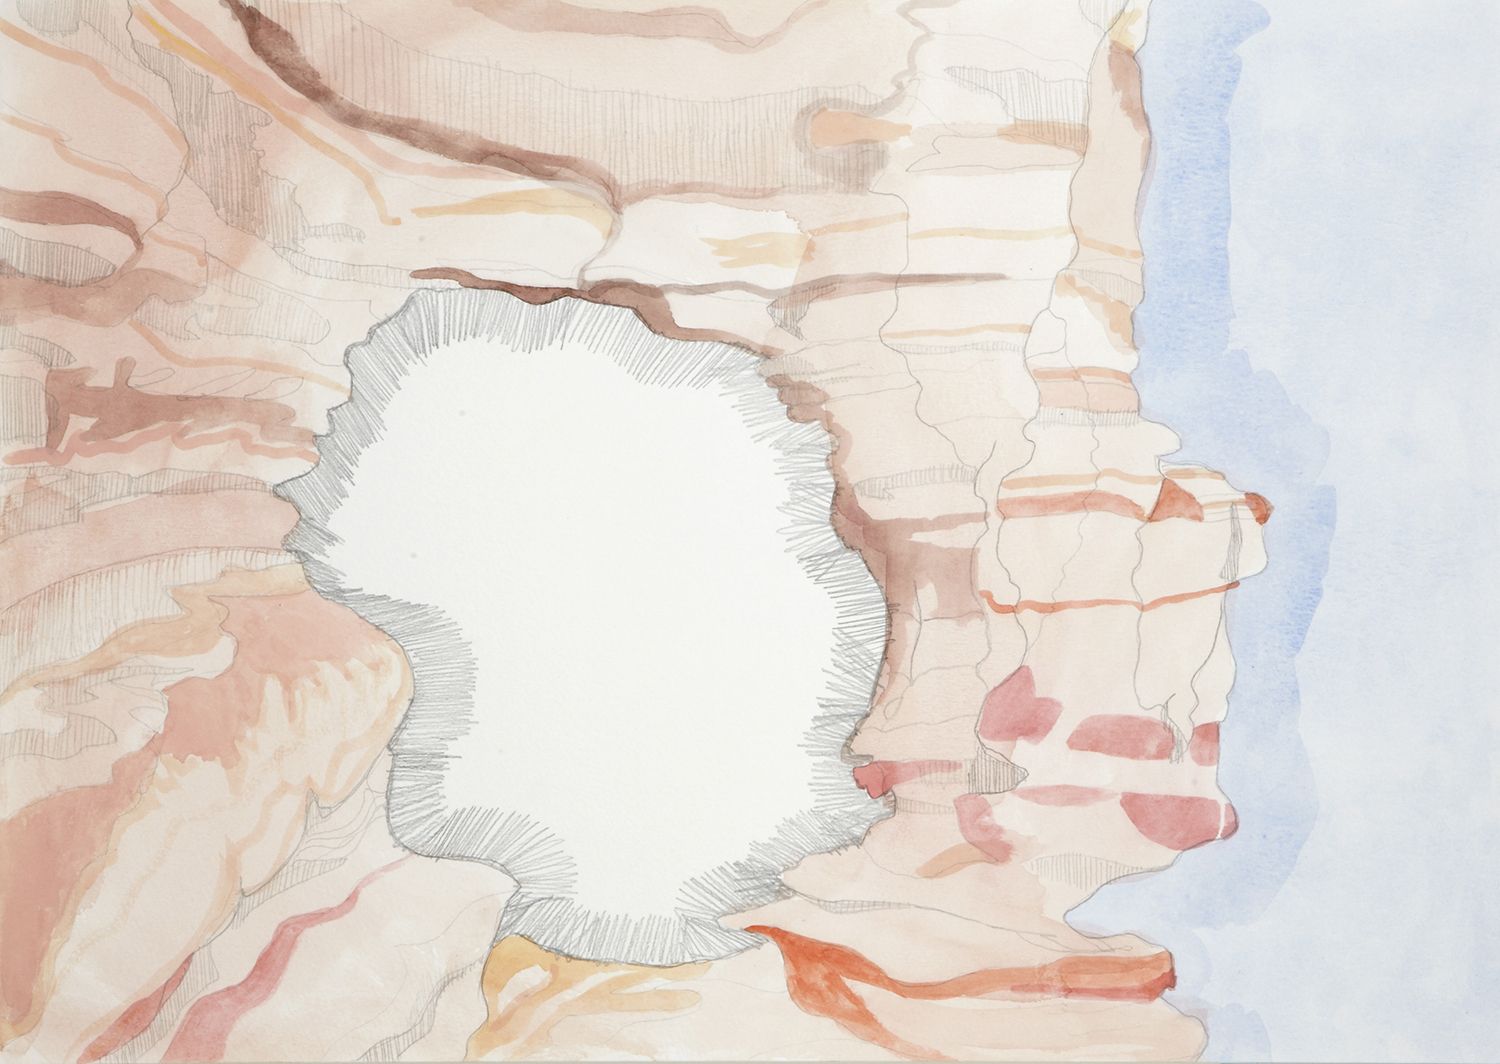 Caving, 2012, Watercolour and pencil on paper, 29.0 x 42.0 cm, Photo: Sam Scoufos